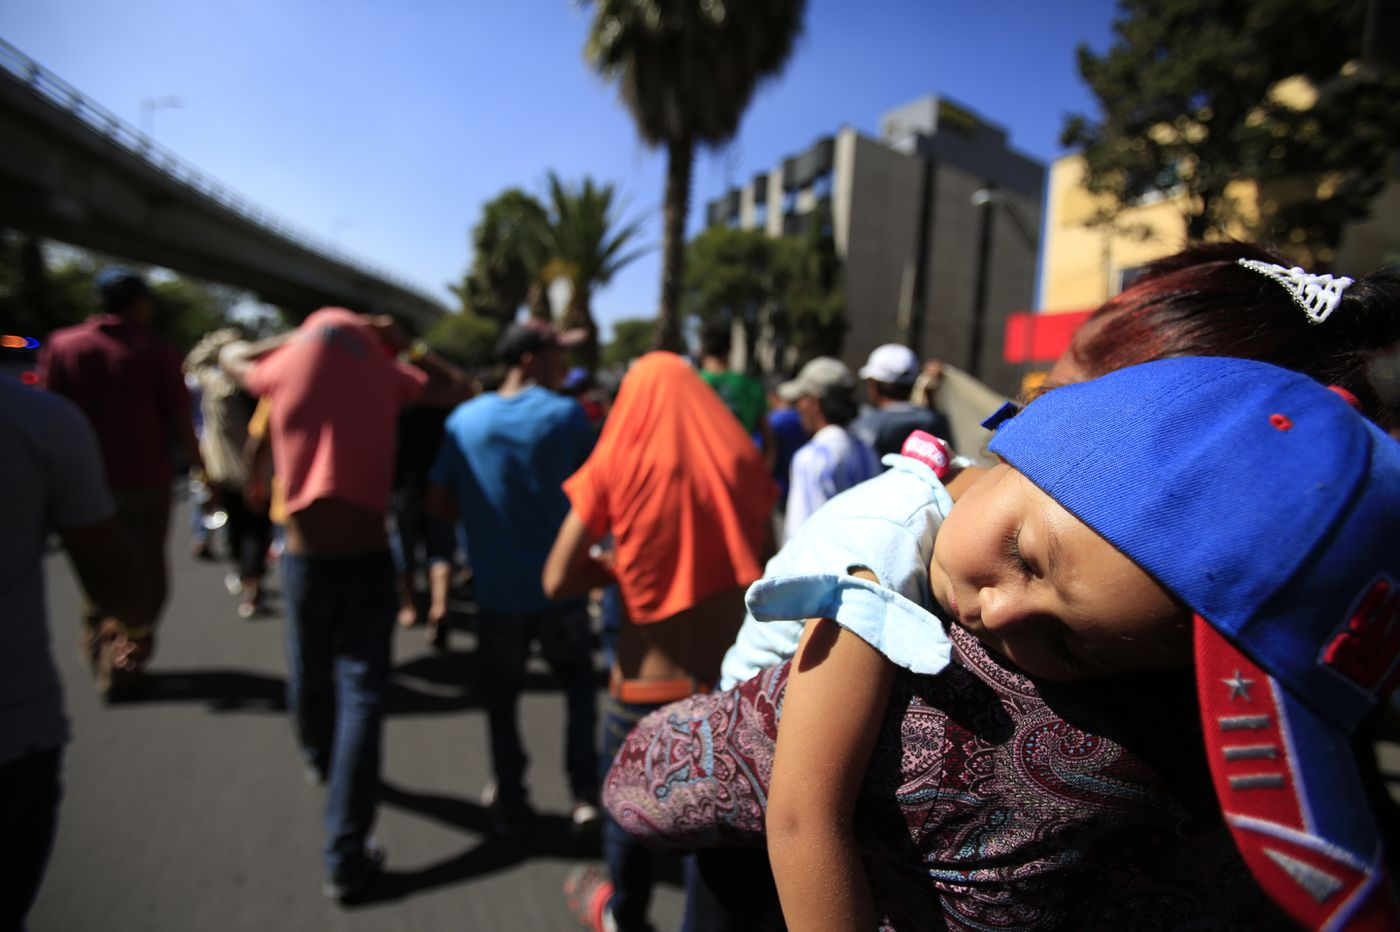 US immigration officials move to restrict asylum at border